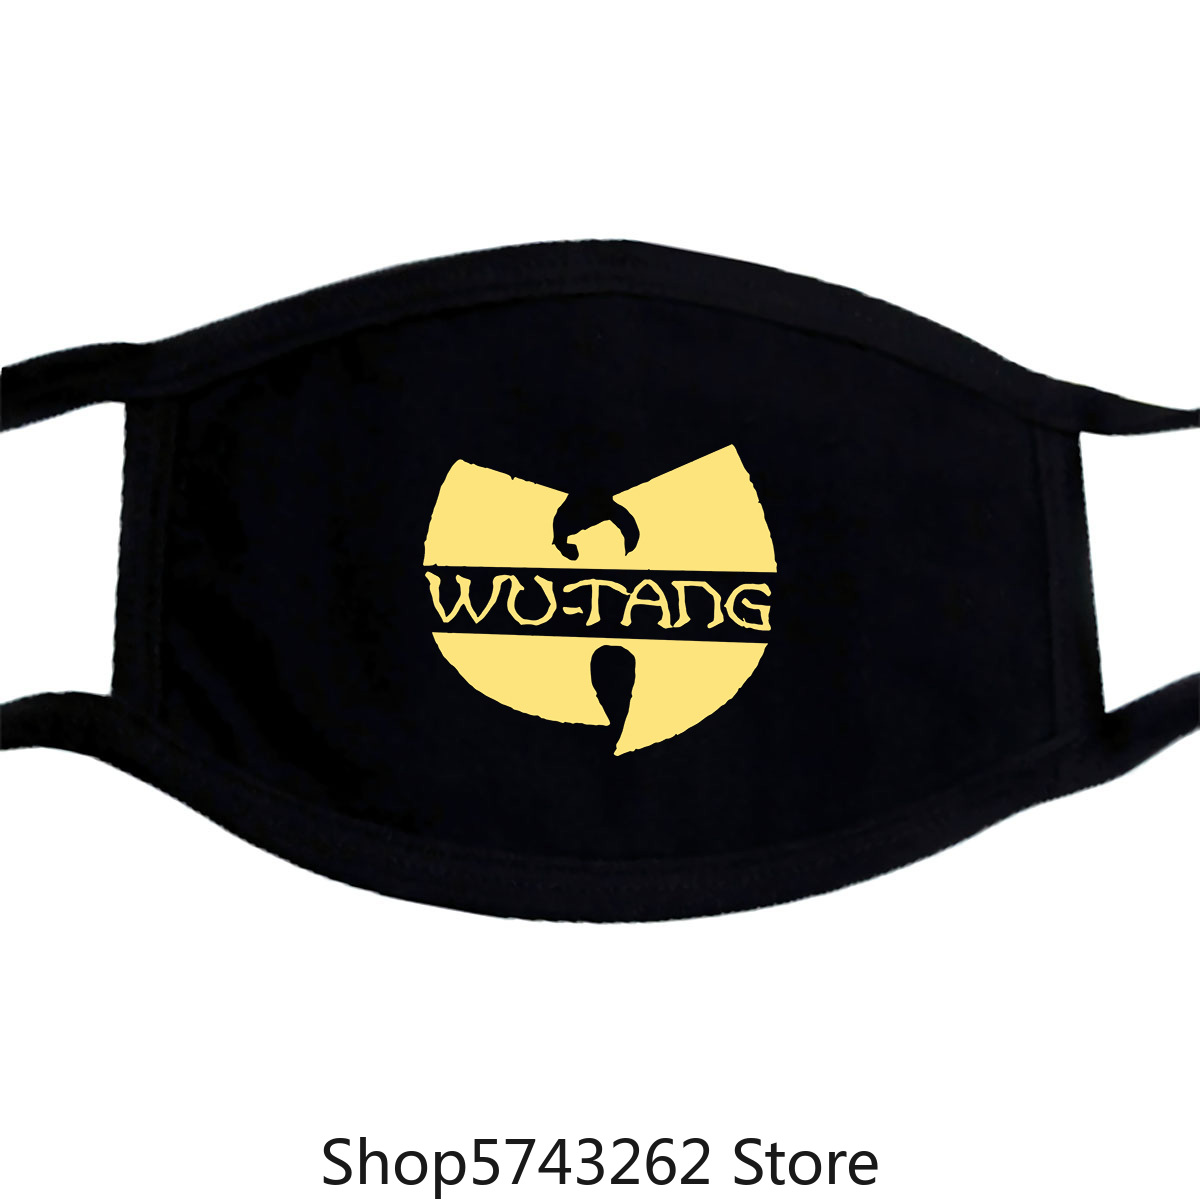 Wu Tang Clan Embroidered W Logo Mask New 100 Authentic Washable Reusable Mask